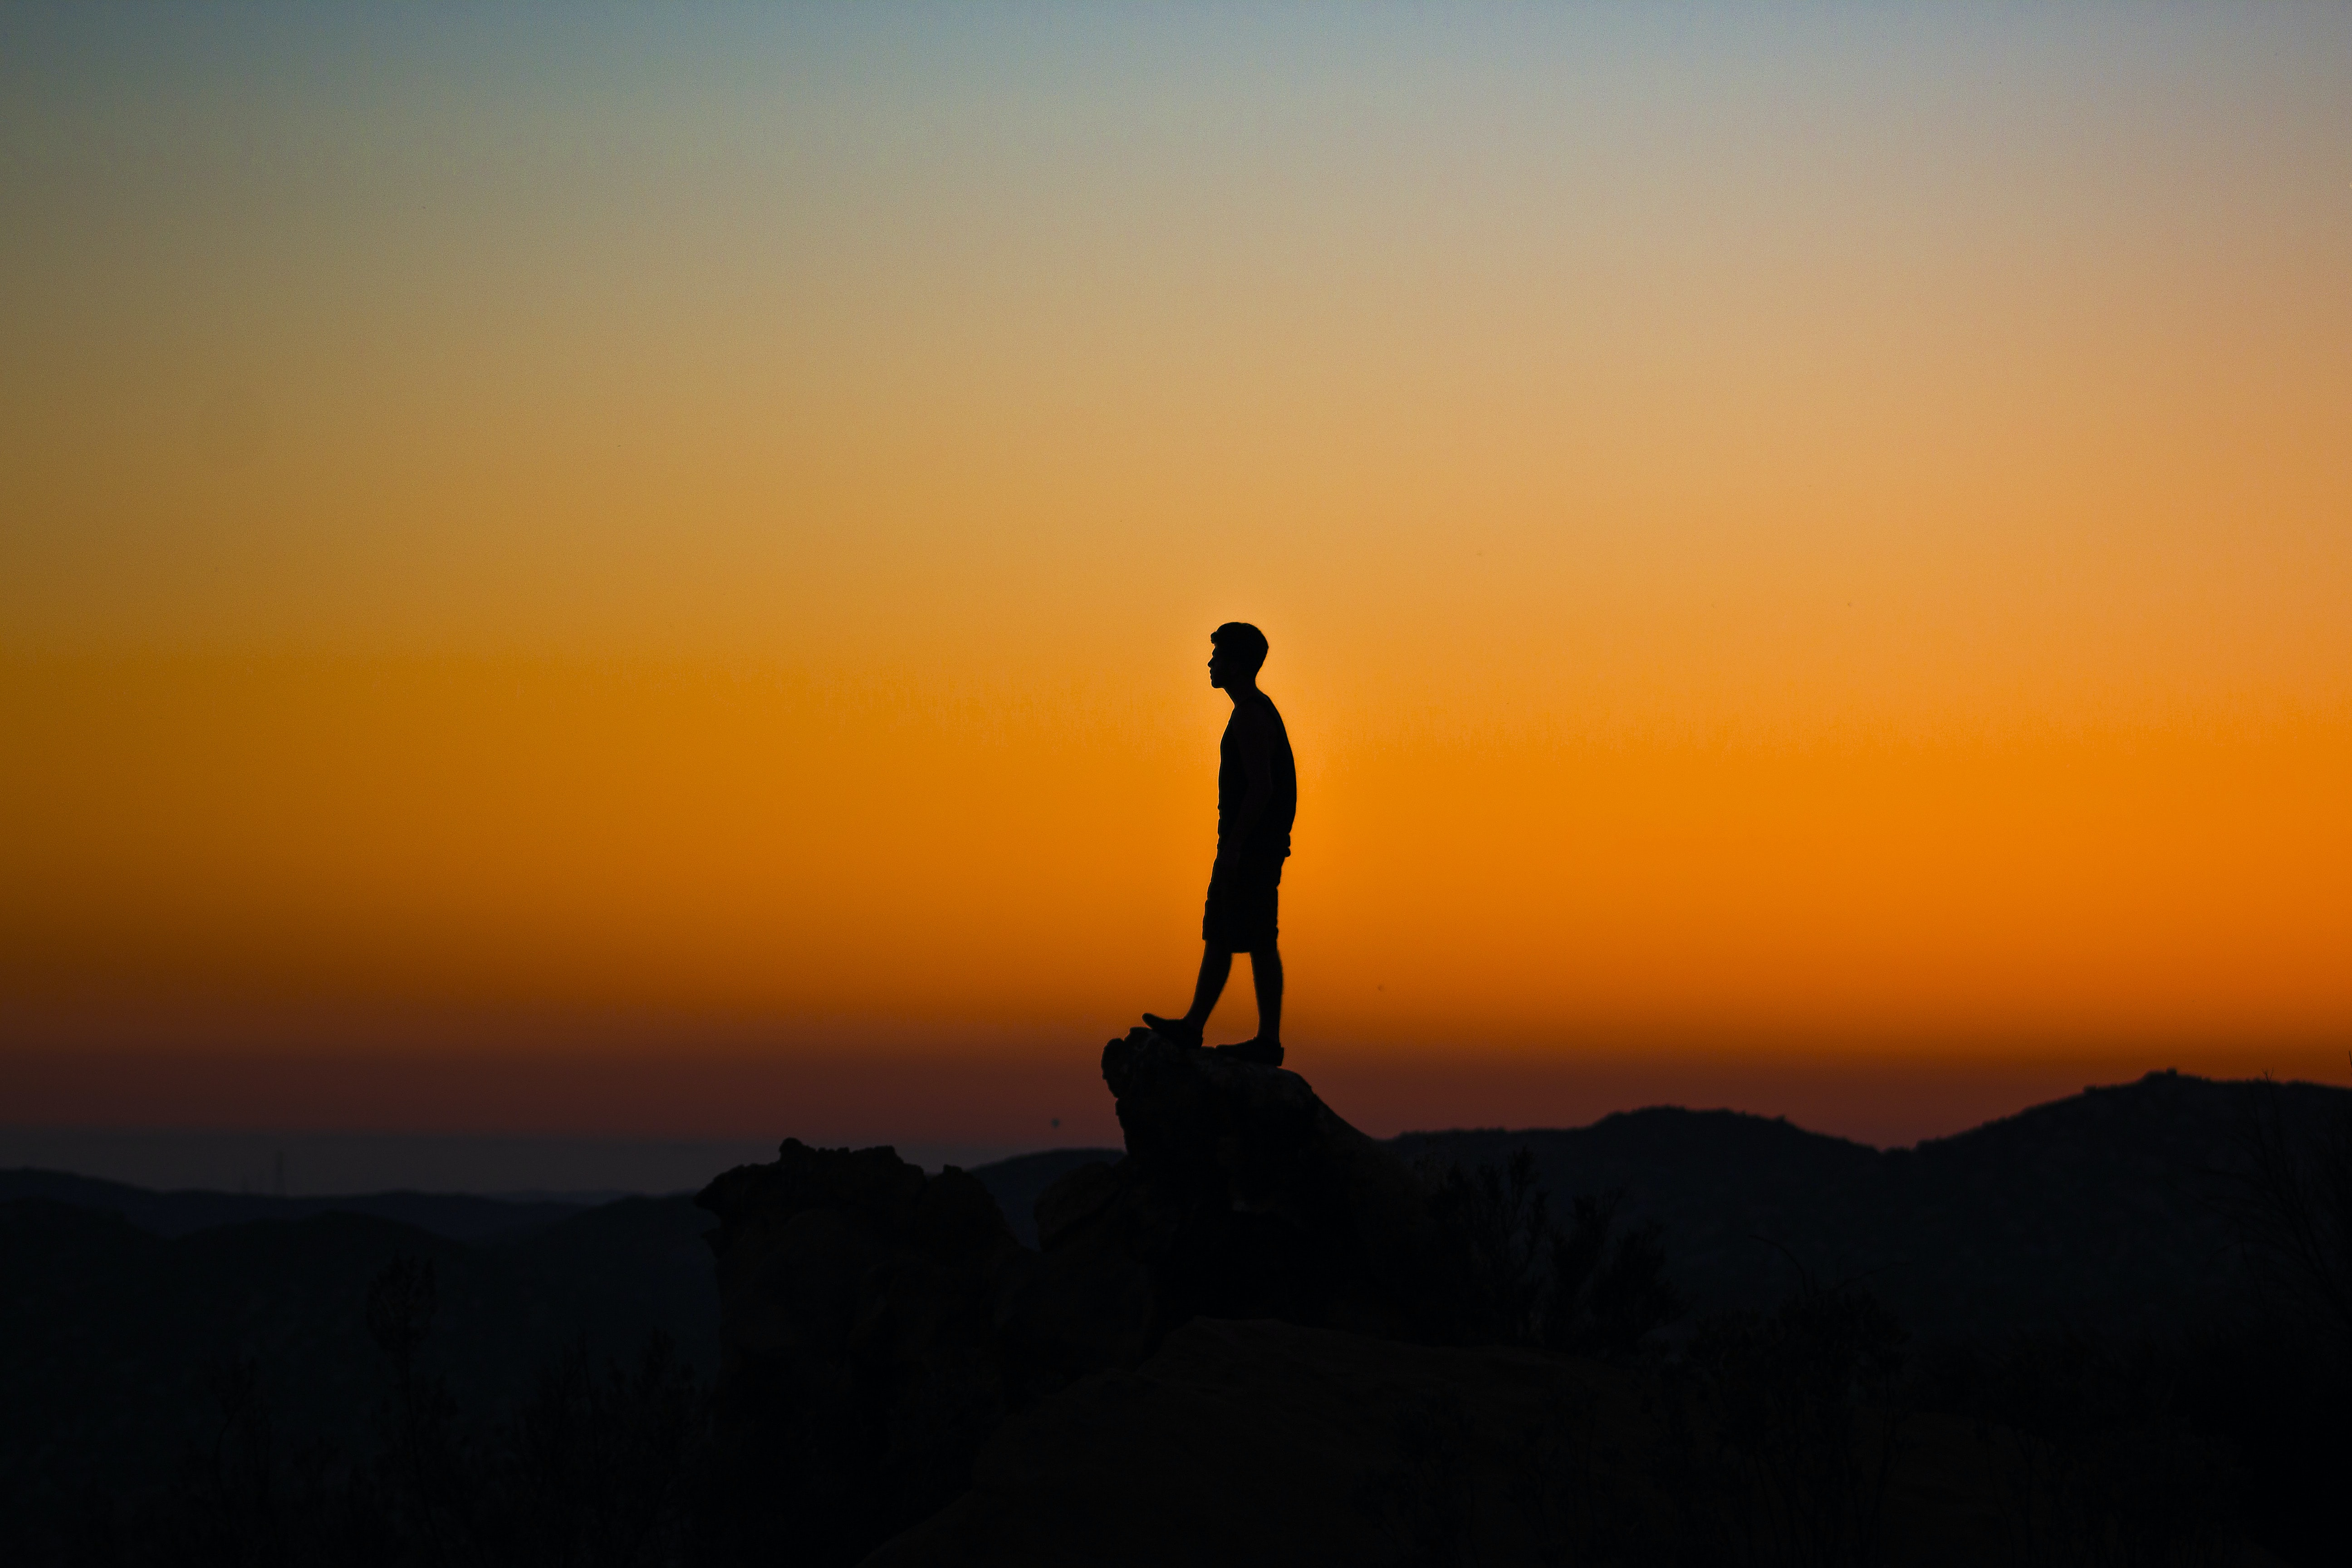 A silhouette of a man standing on a ledge against the backdrop of orange sky at sunset